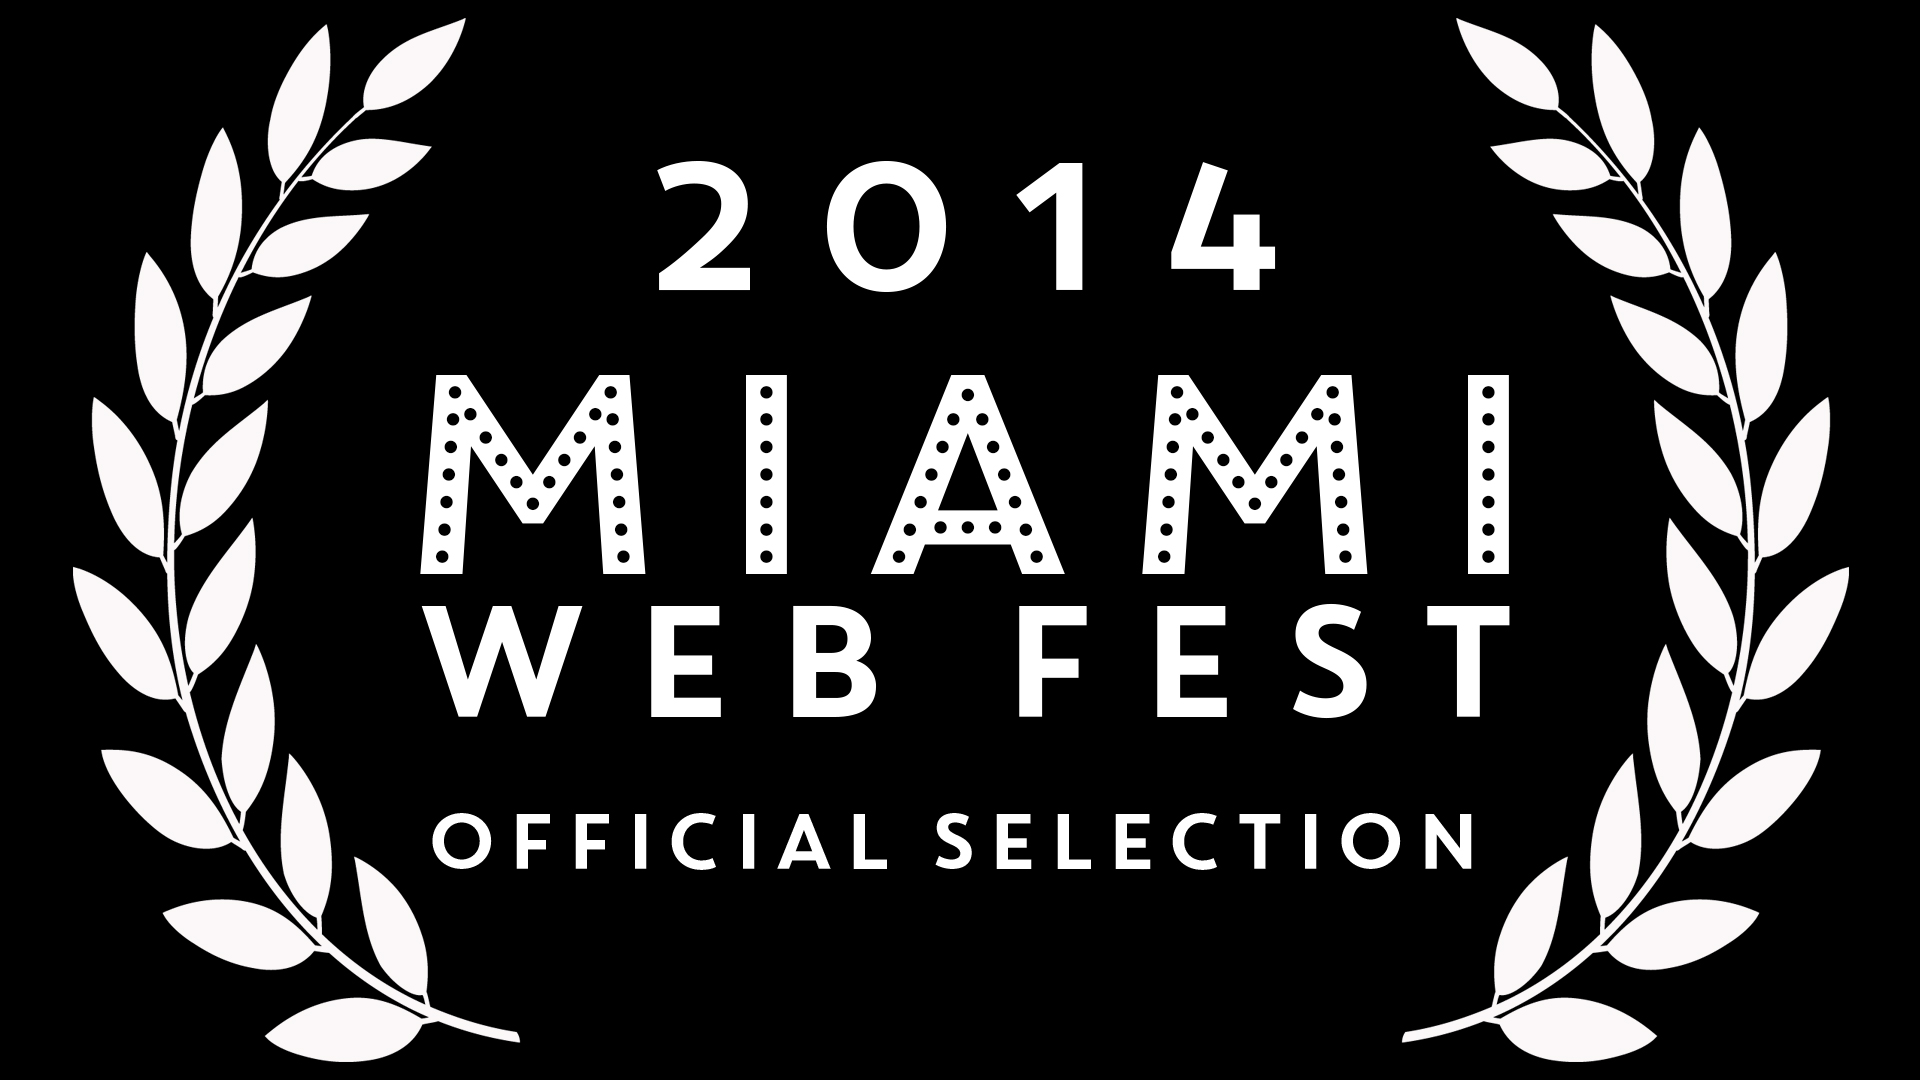 """Holding,"" the web series, created by and starring Casey McDougal was an official selection of the 2014 Miami Web Fest."